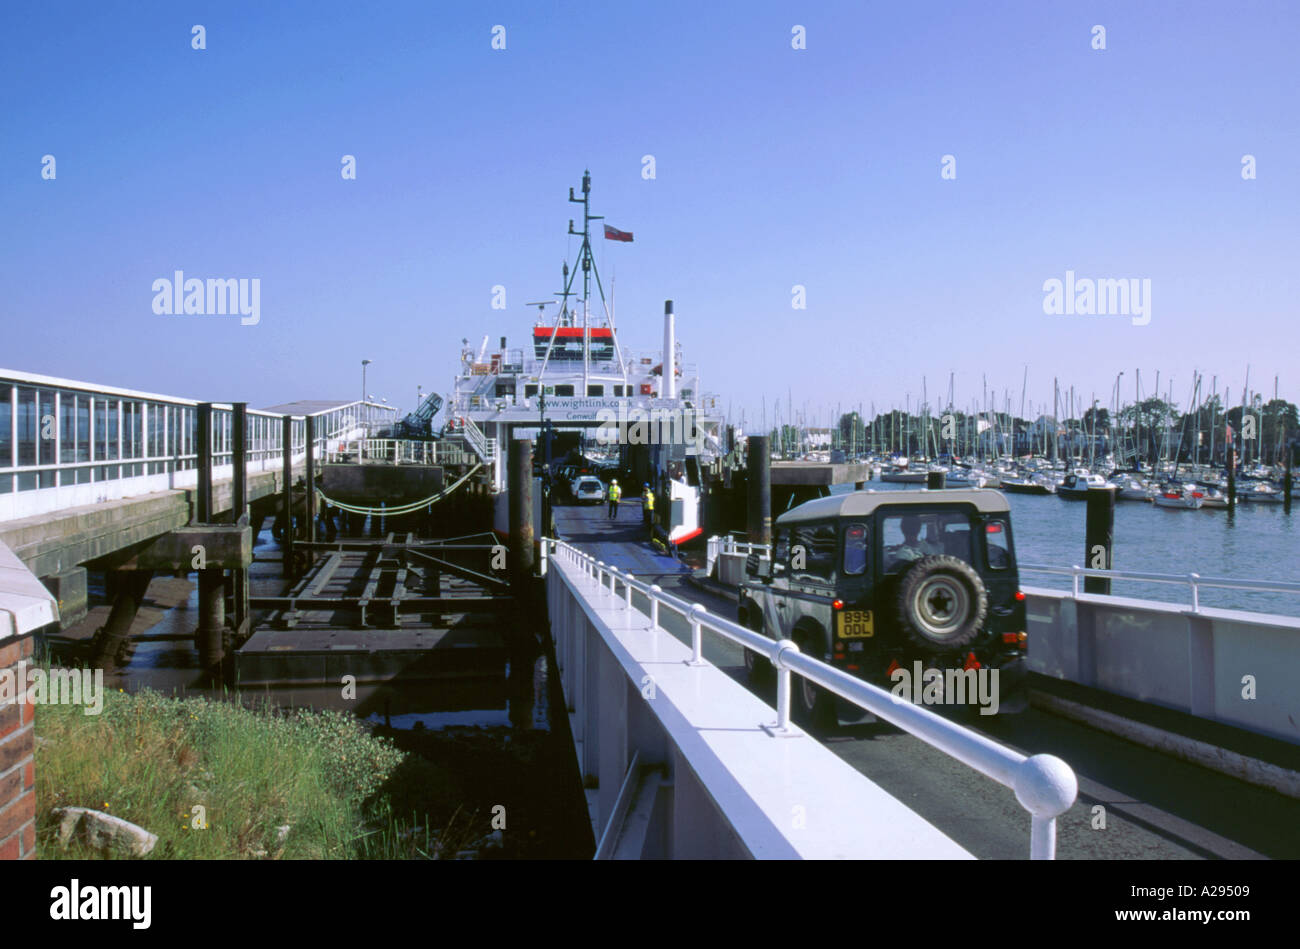 Cars boarding Lymington ferry bound for Isle of Wight - Stock Image